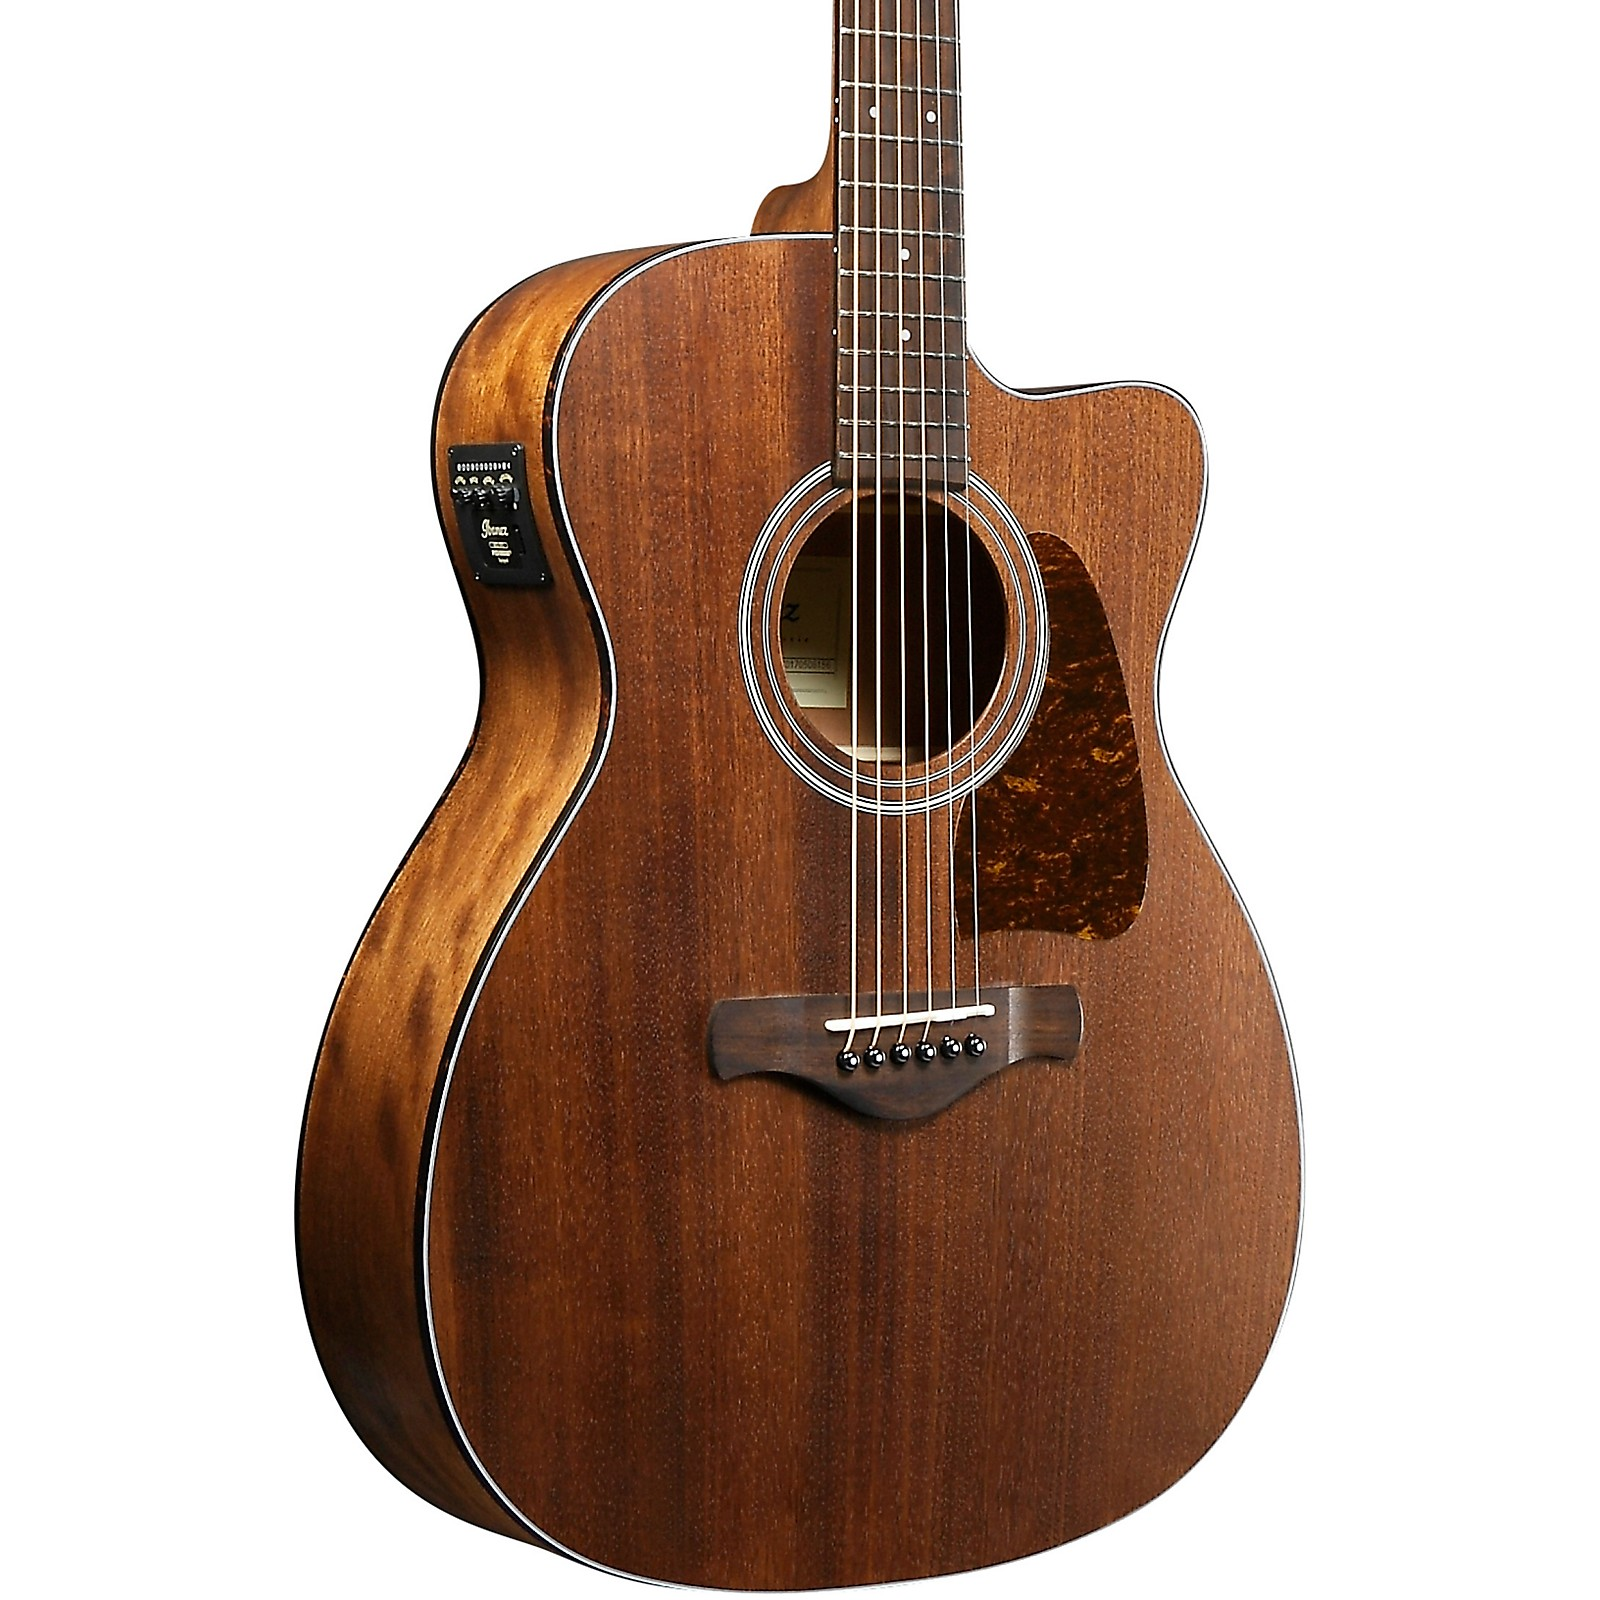 Ibanez AVC9CEOPN Grand Concert Acoustic-Electric Guitar